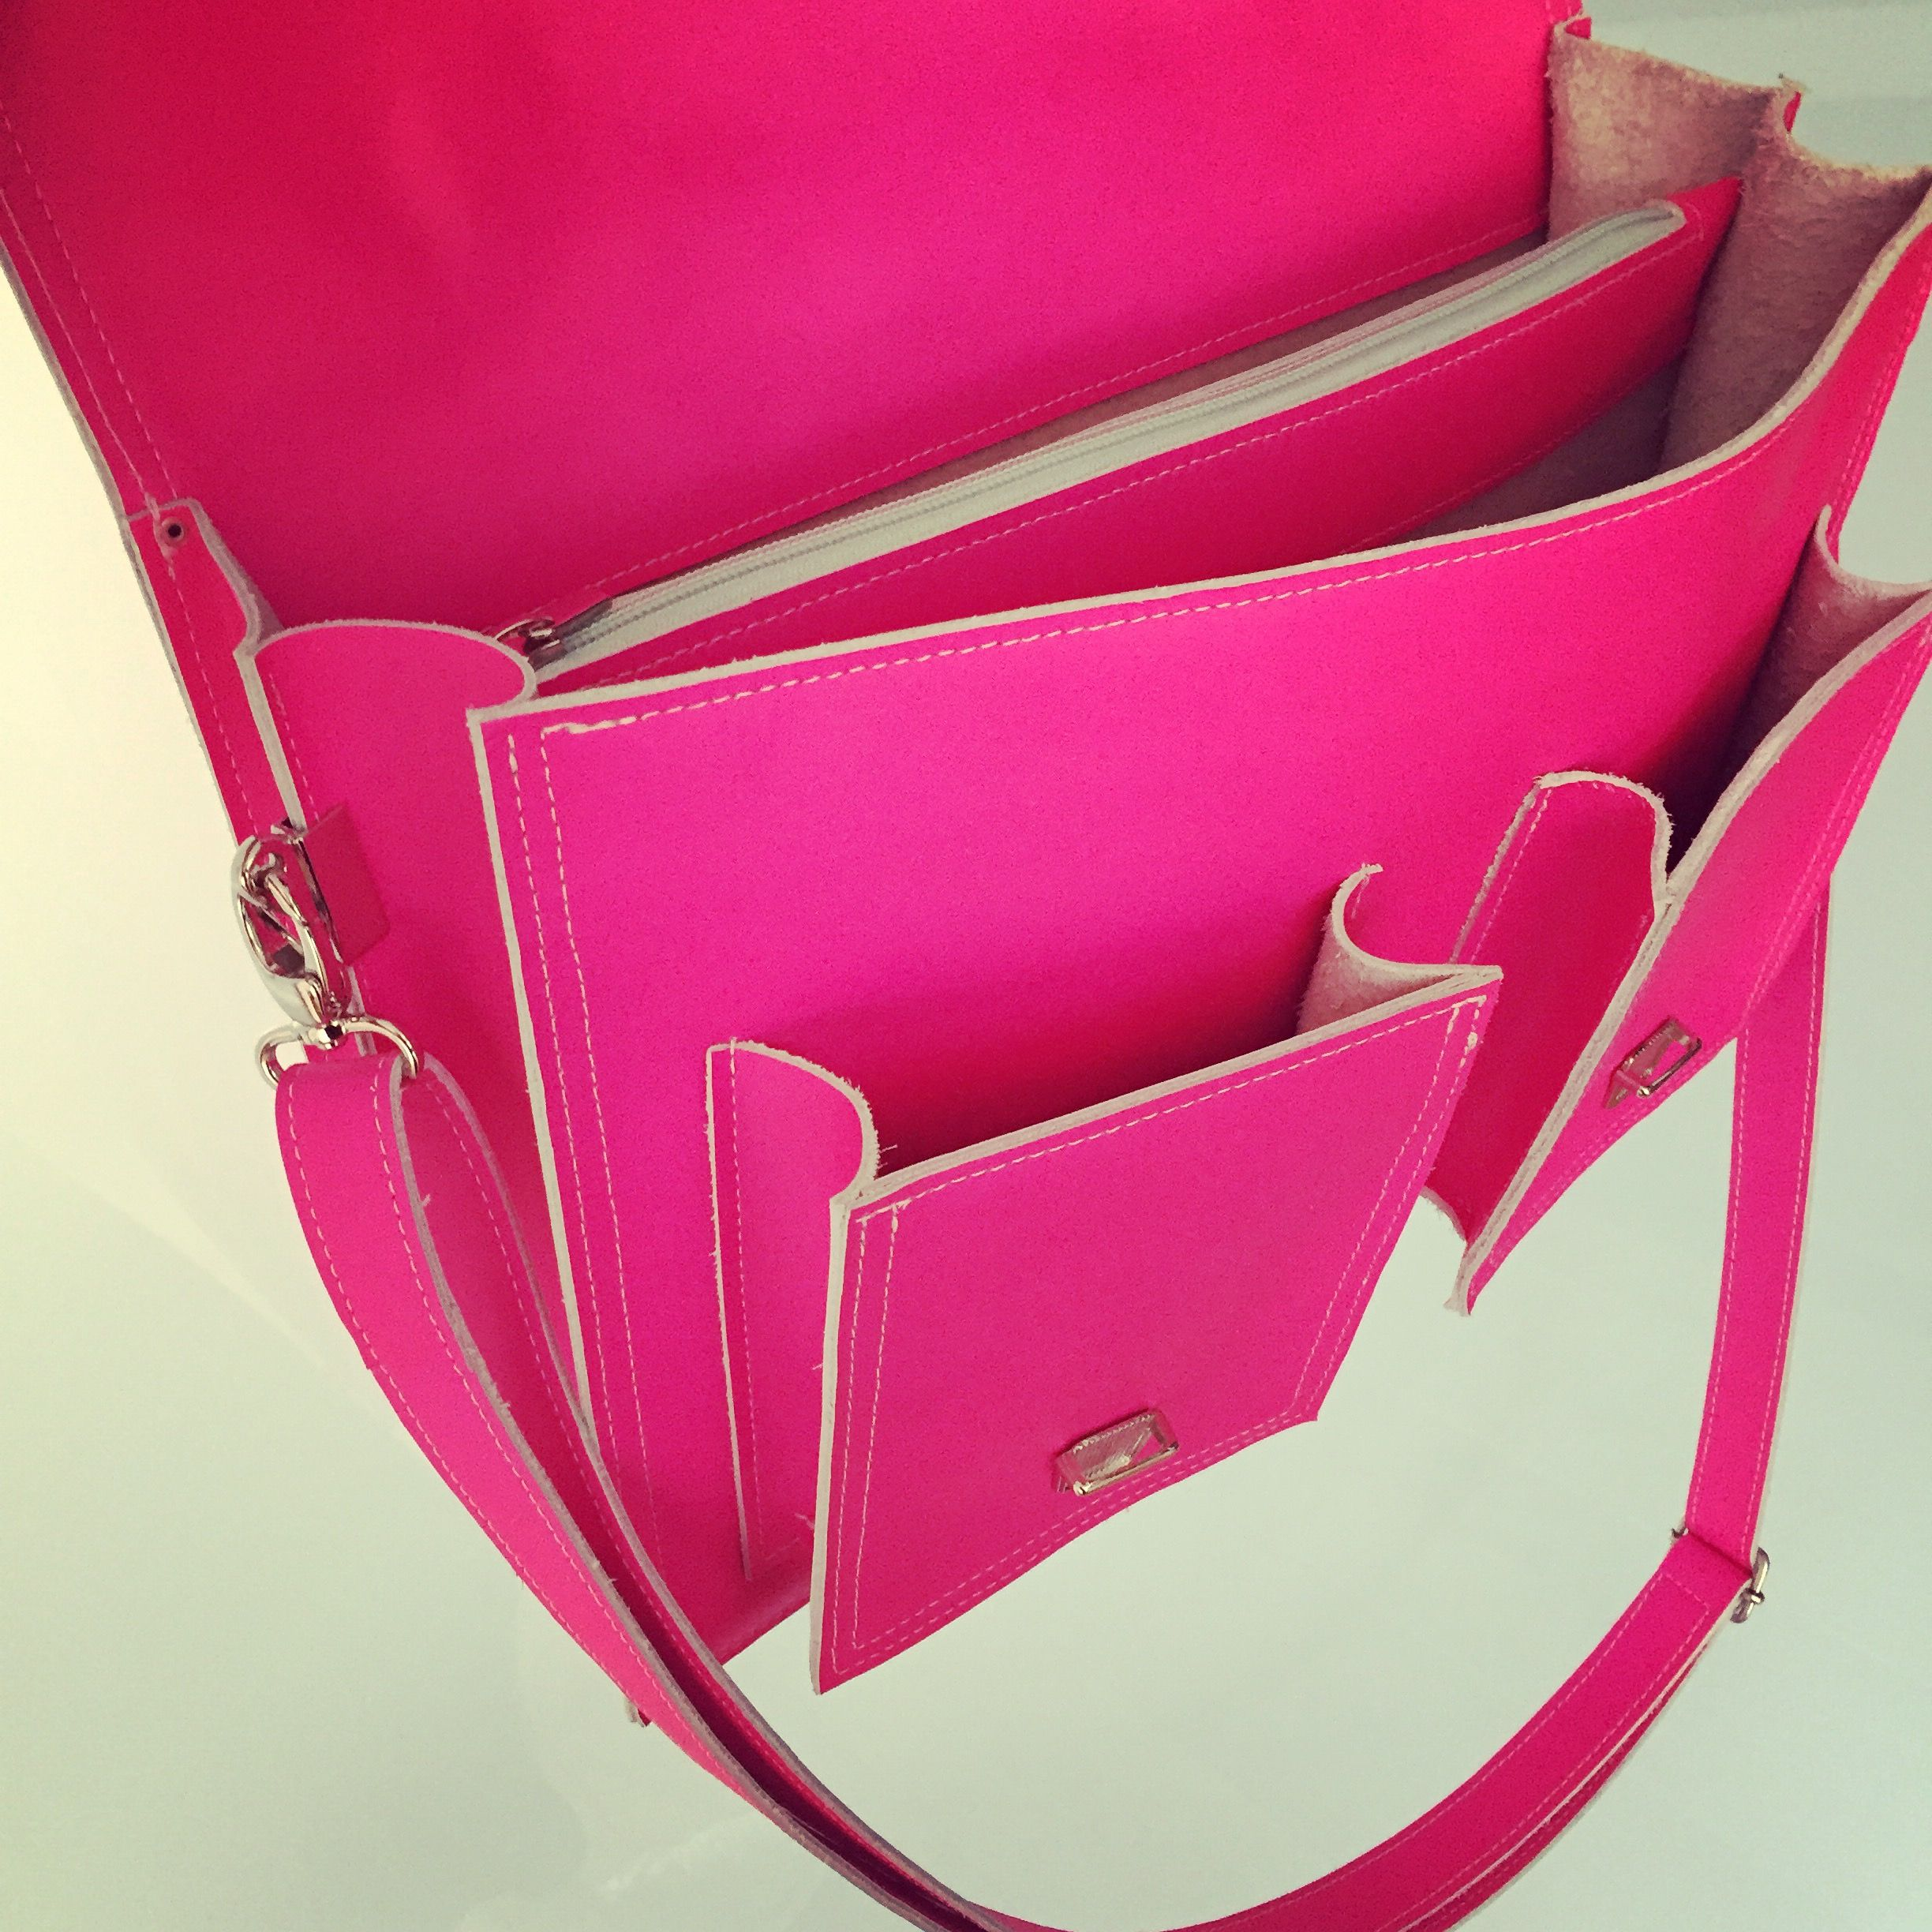 Dazzling schoolbag in fluor roze  Handcrafted bag using a special technique, keersouflee